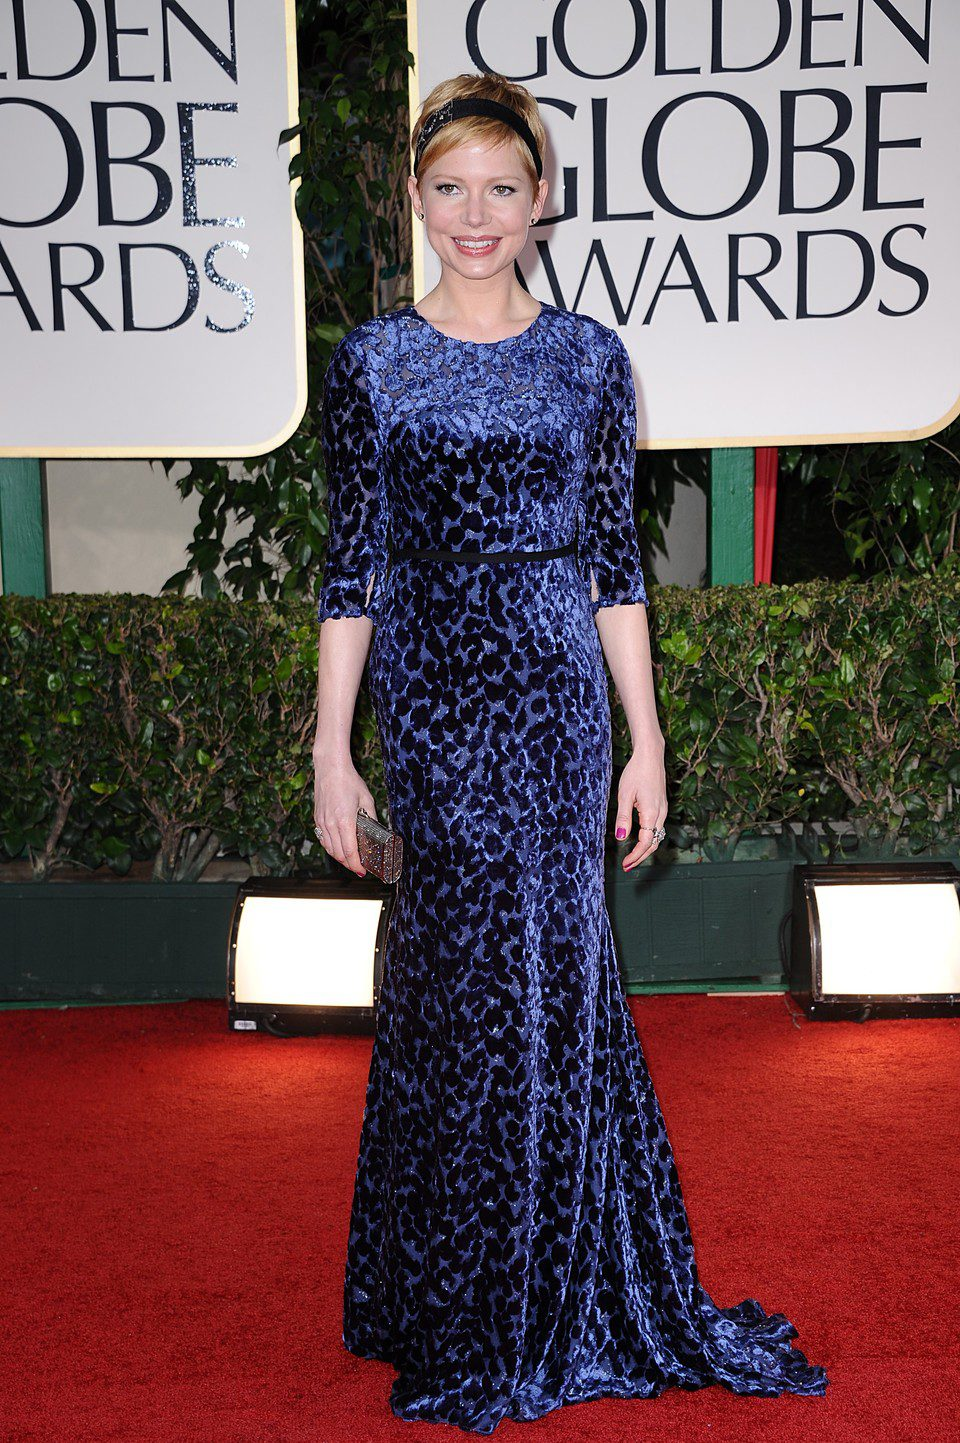 Michelle Williams en el photocall de los Globos de Oro 2012